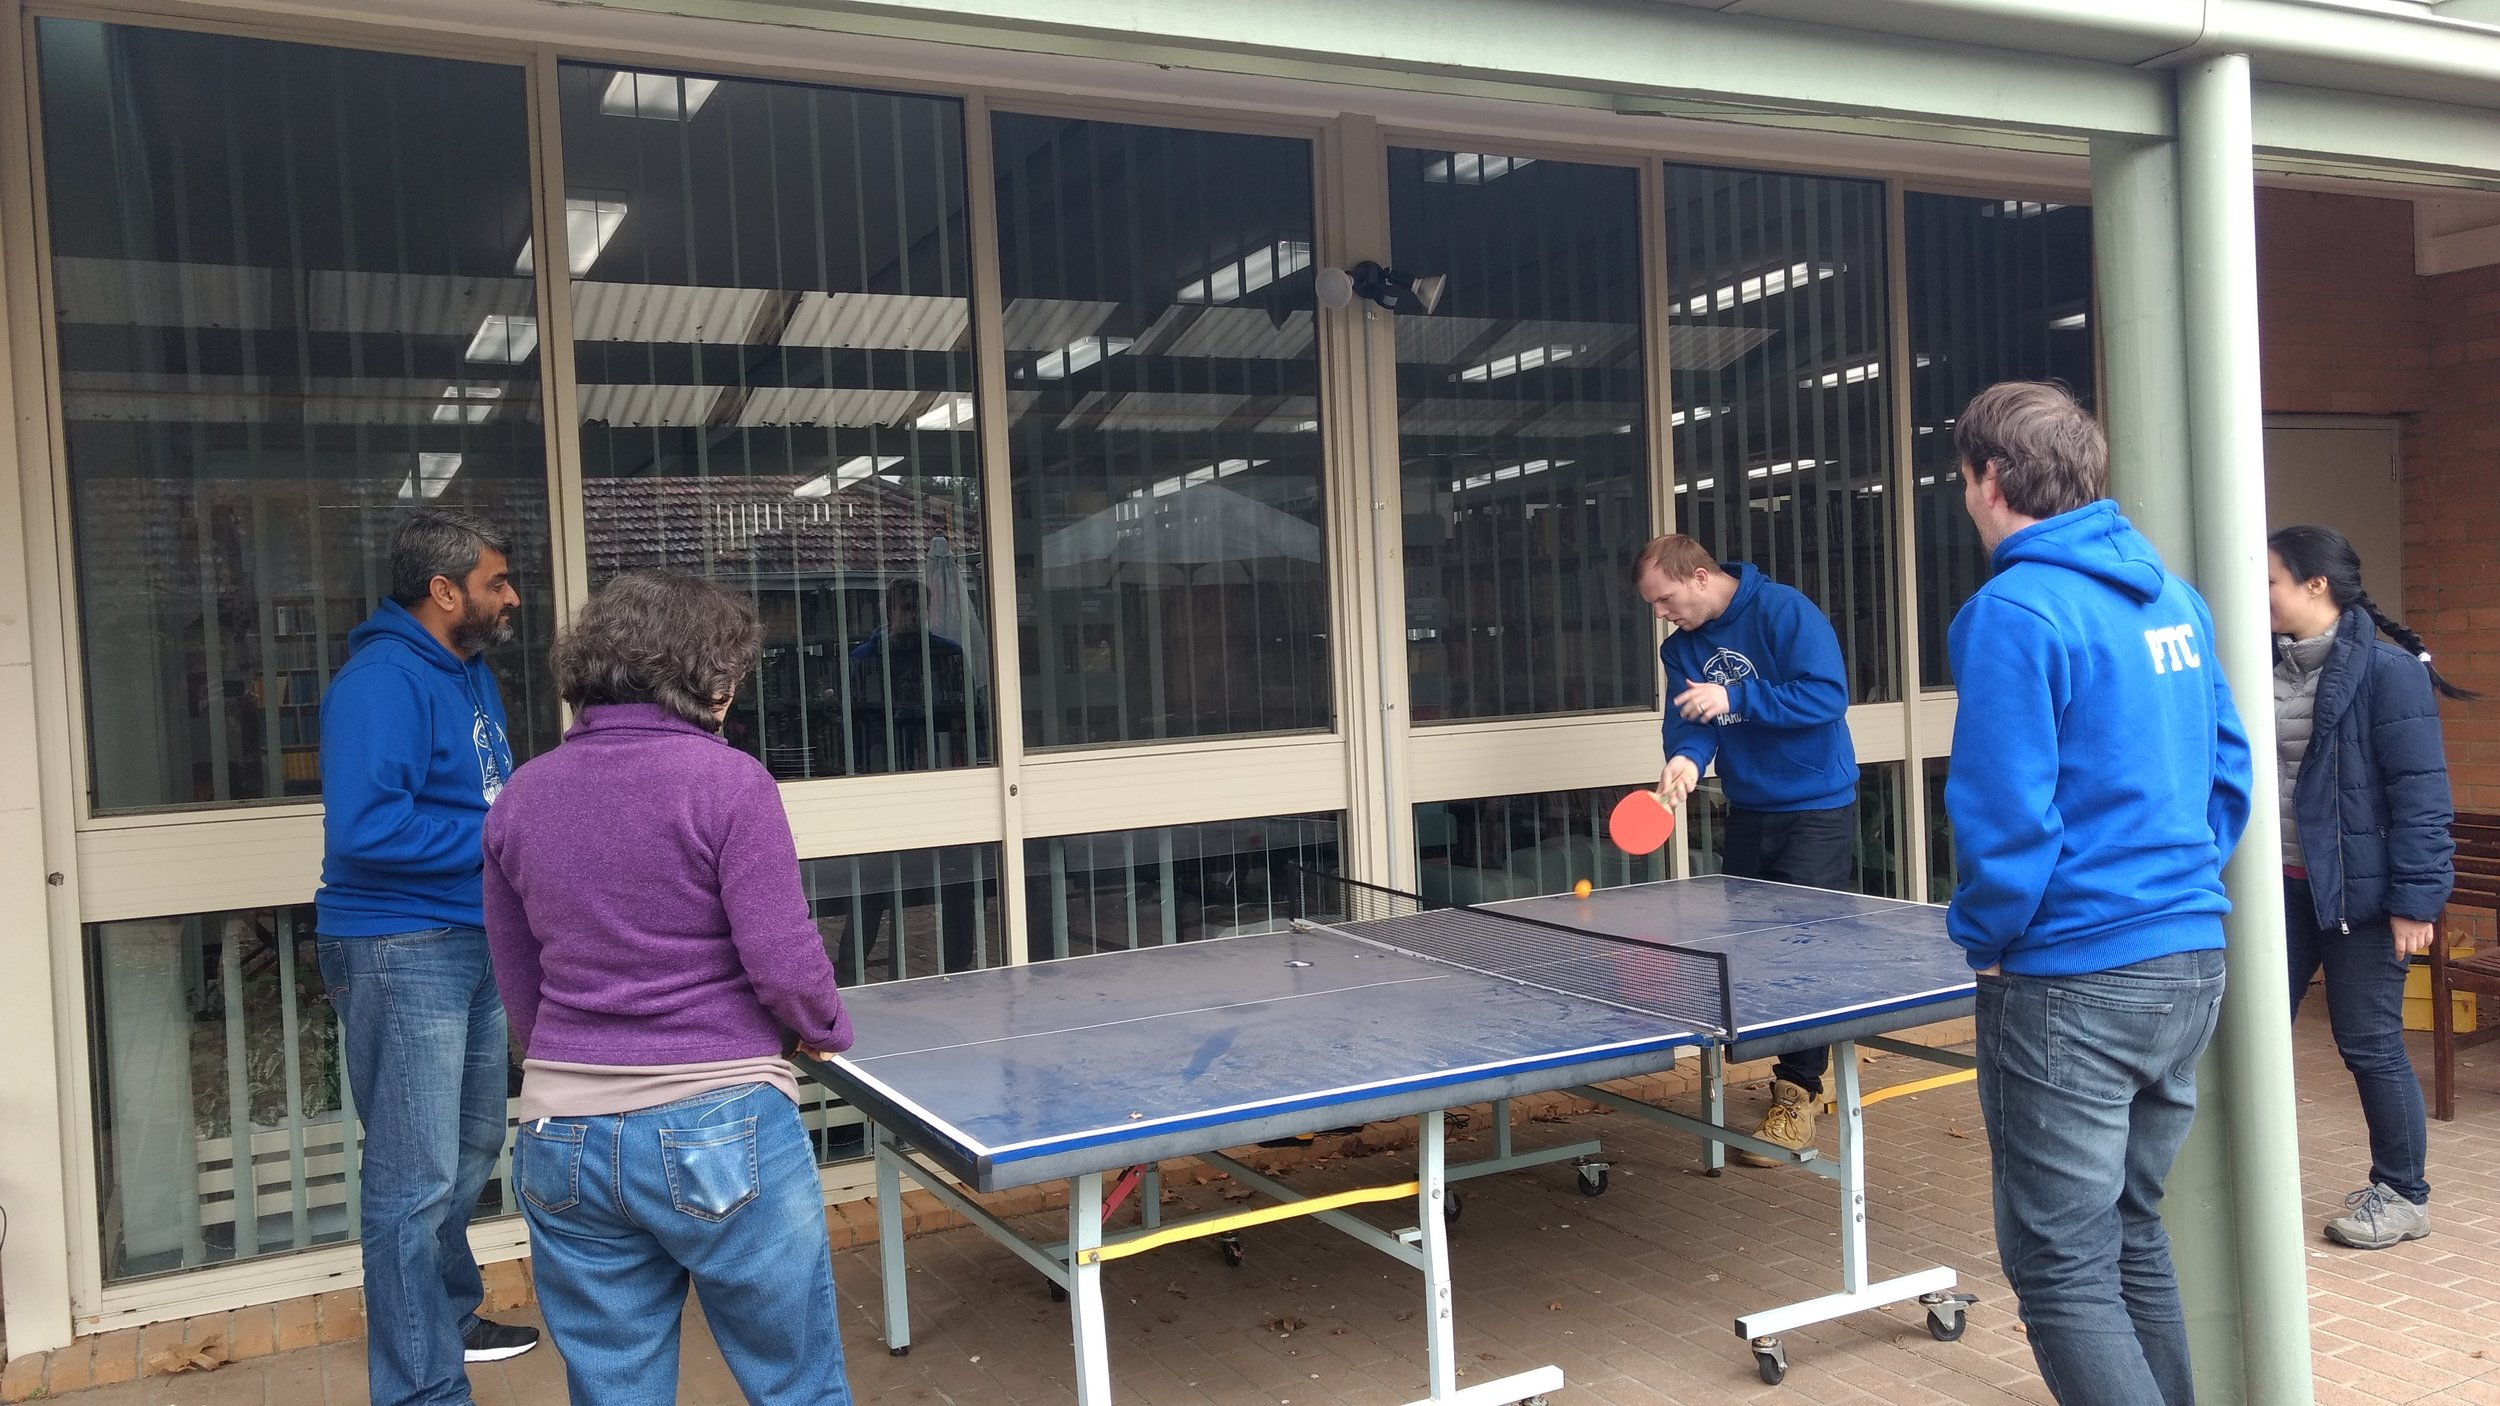 jpf students table tennis